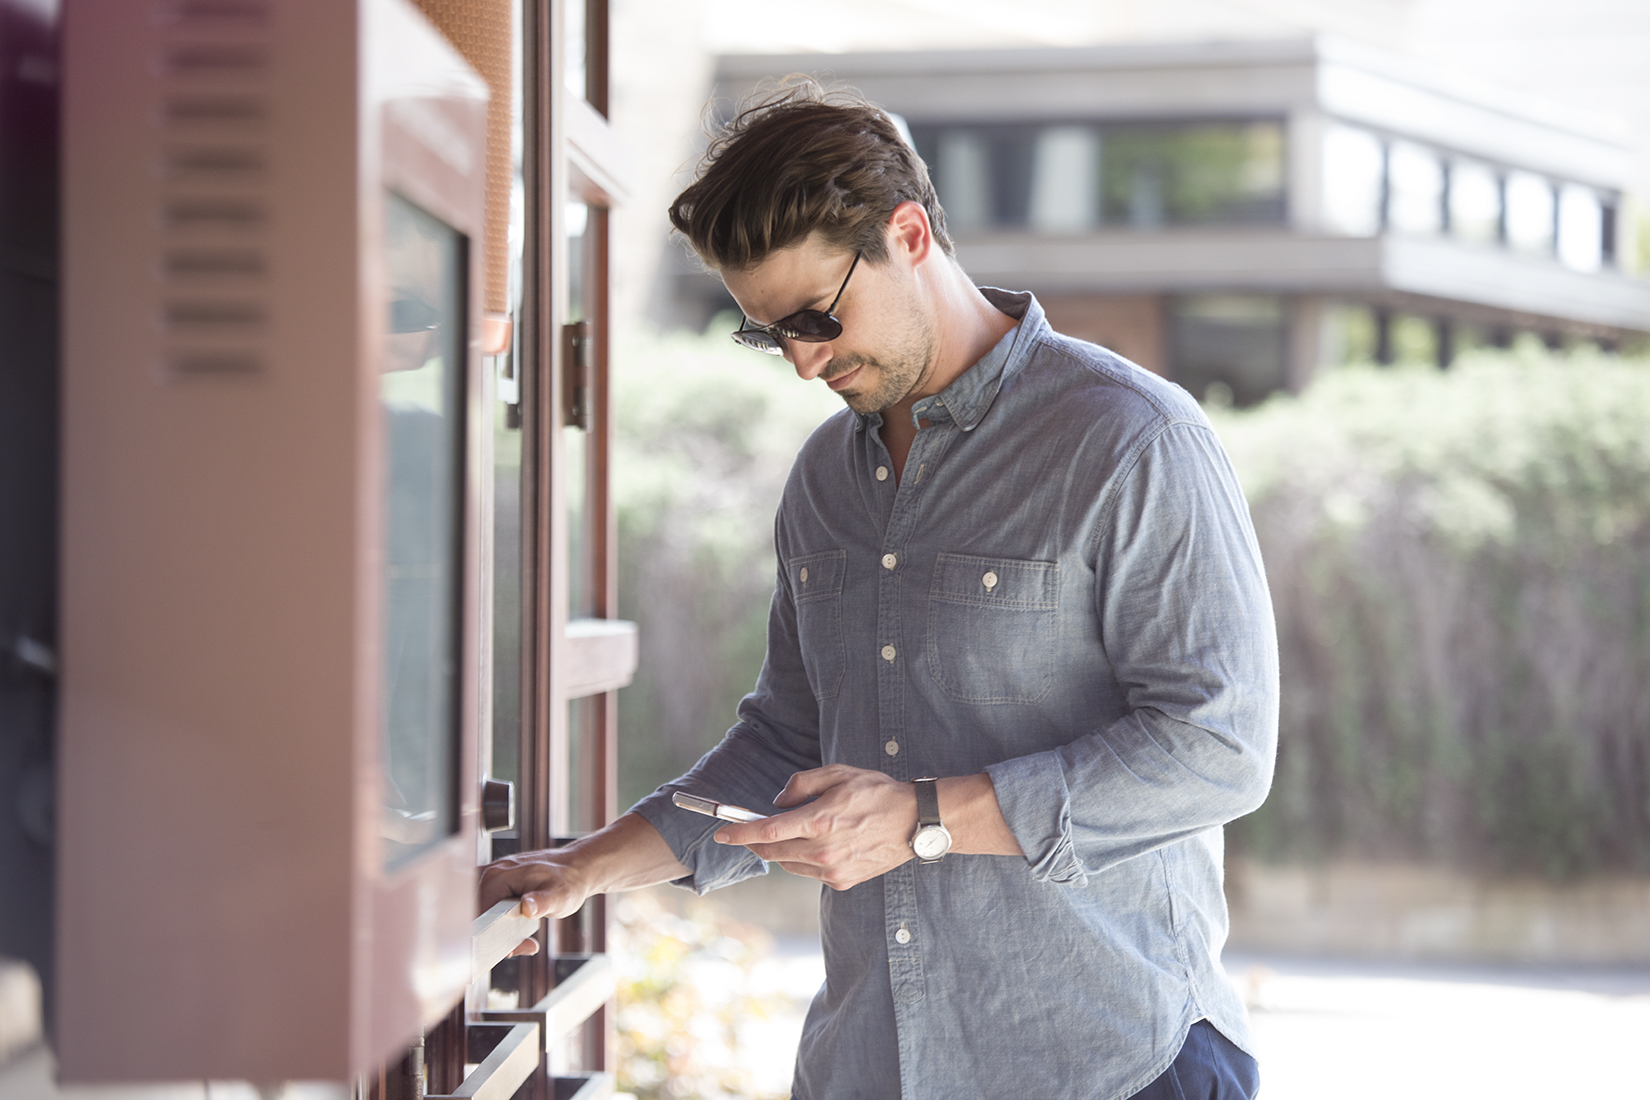 Telcom_Male with Phone by Store.jpg